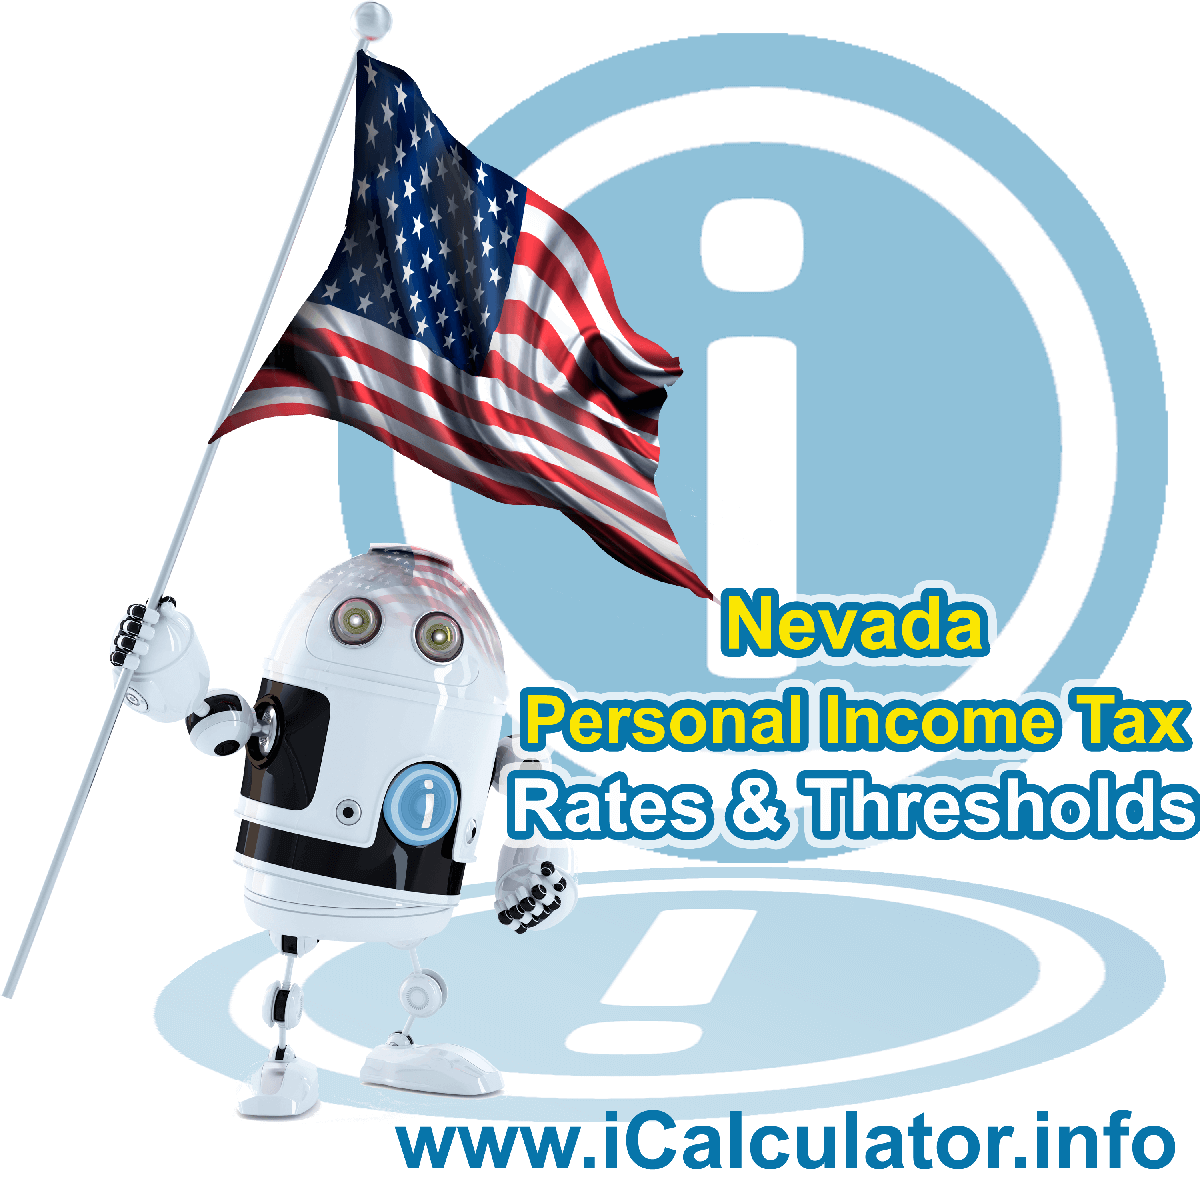 Nevada State Tax Tables 2017. This image displays details of the Nevada State Tax Tables for the 2017 tax return year which is provided in support of the 2017 US Tax Calculator